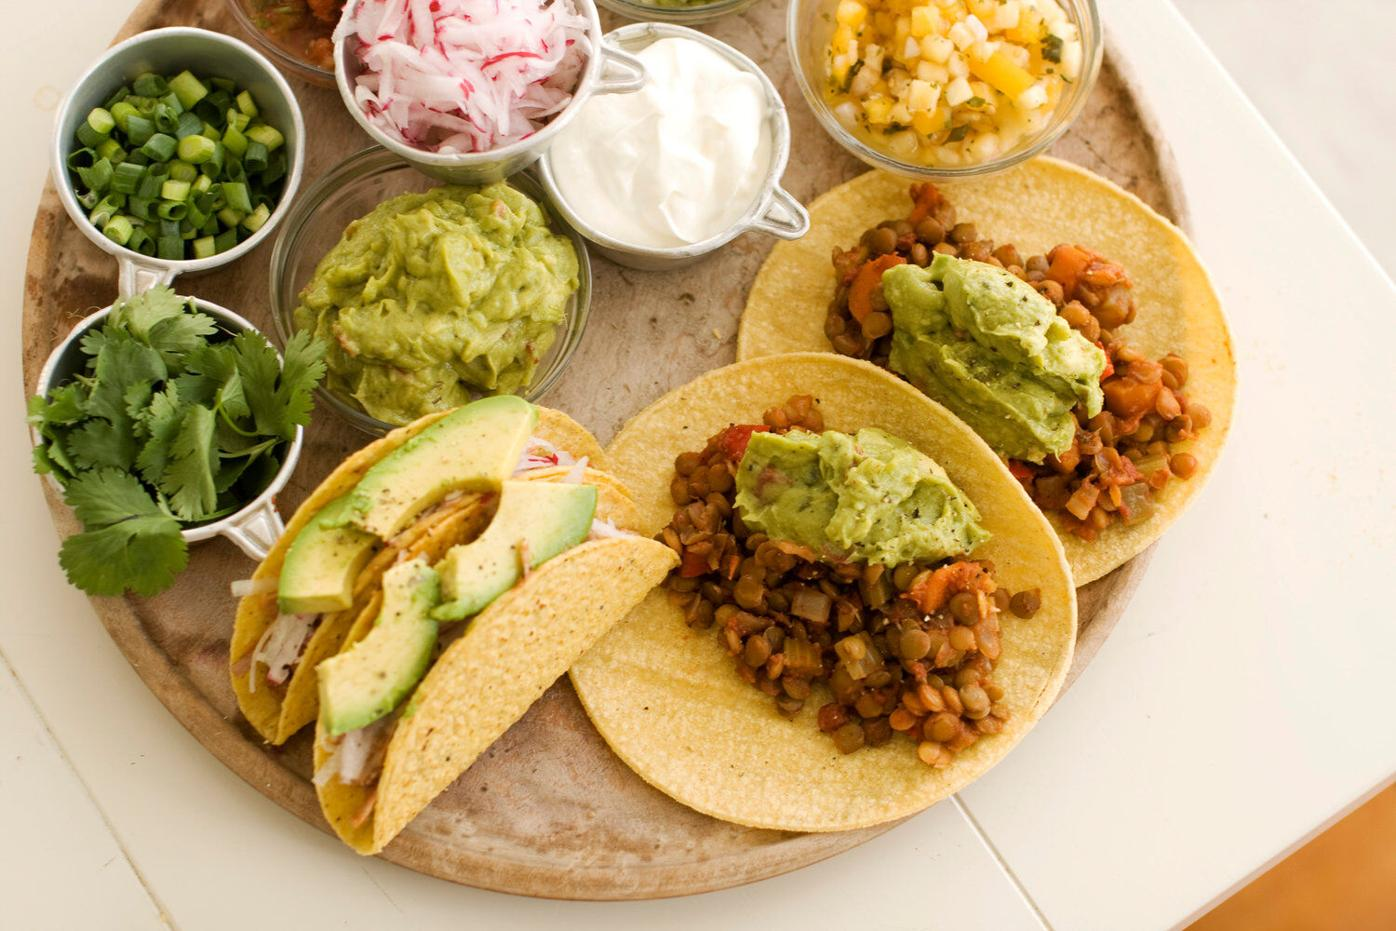 Make these smoky, delicious pork tacos in just 30 minutes